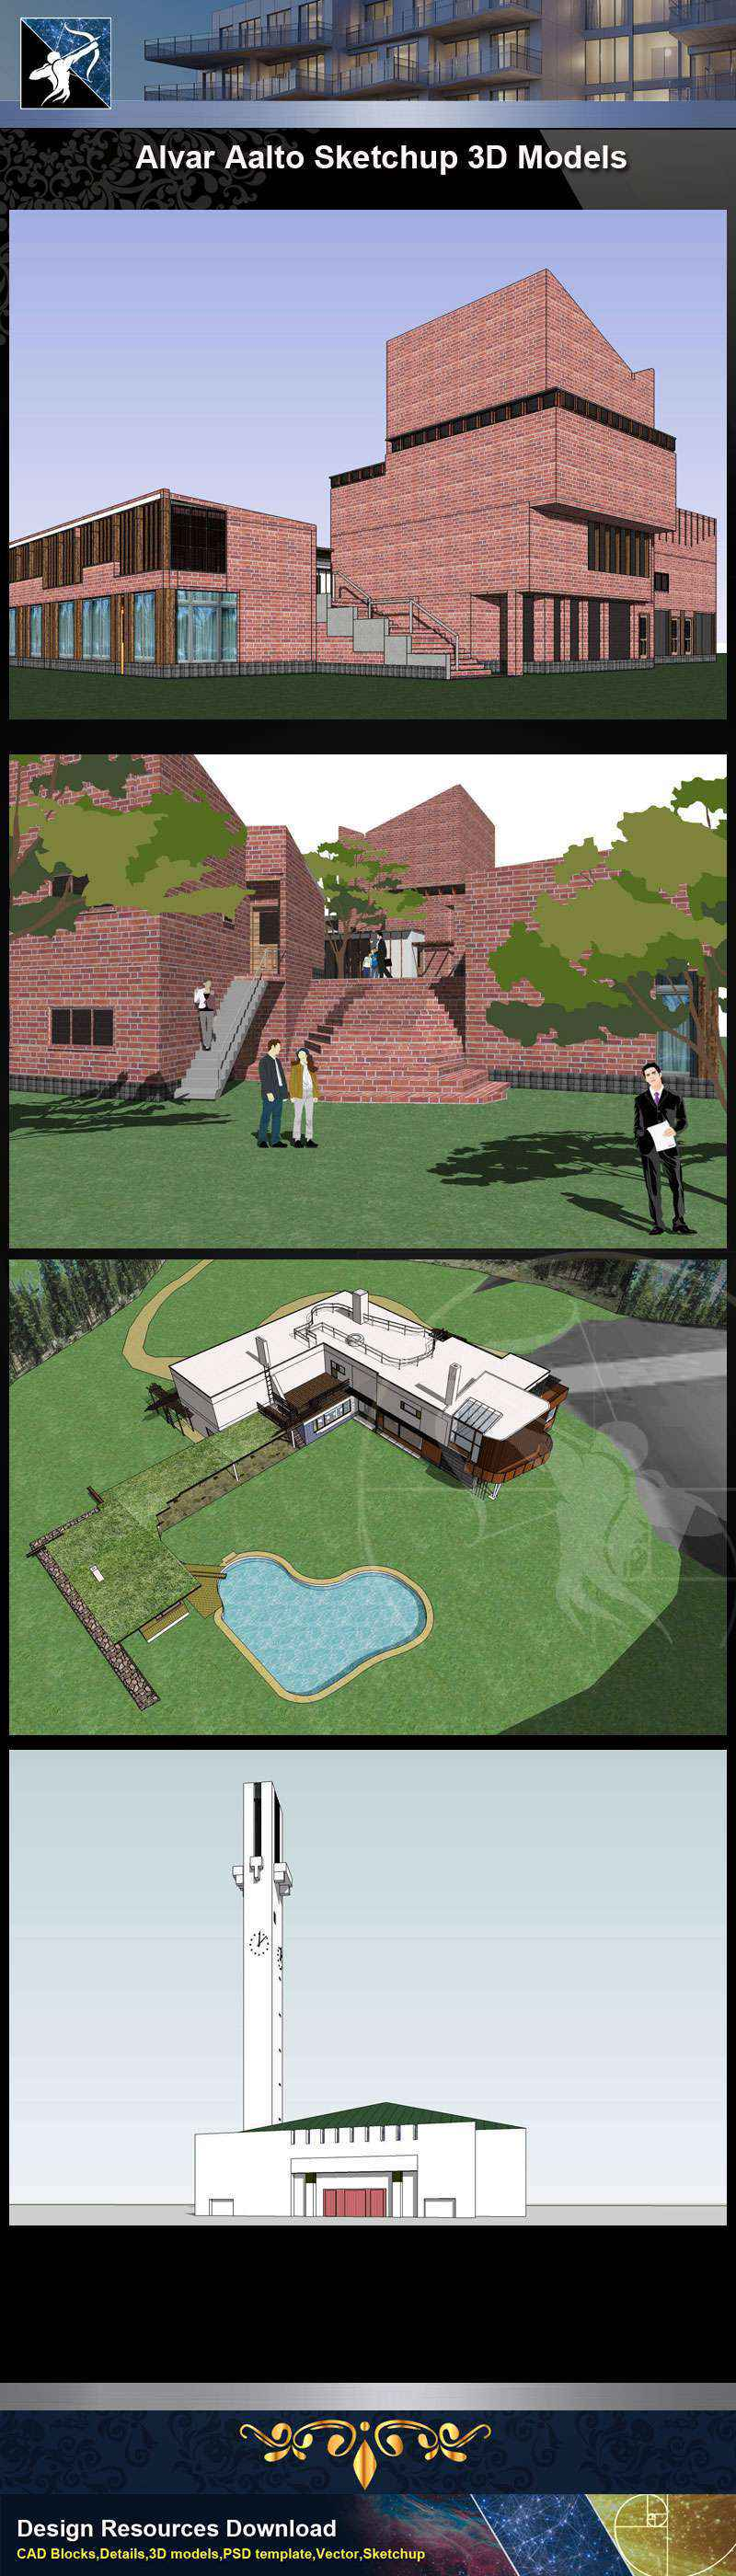 Download 5 Projects Of Alvar Aalto Architecture Sketchup 3d Models Skp File Format Free Cad Download World Download Cad Drawings